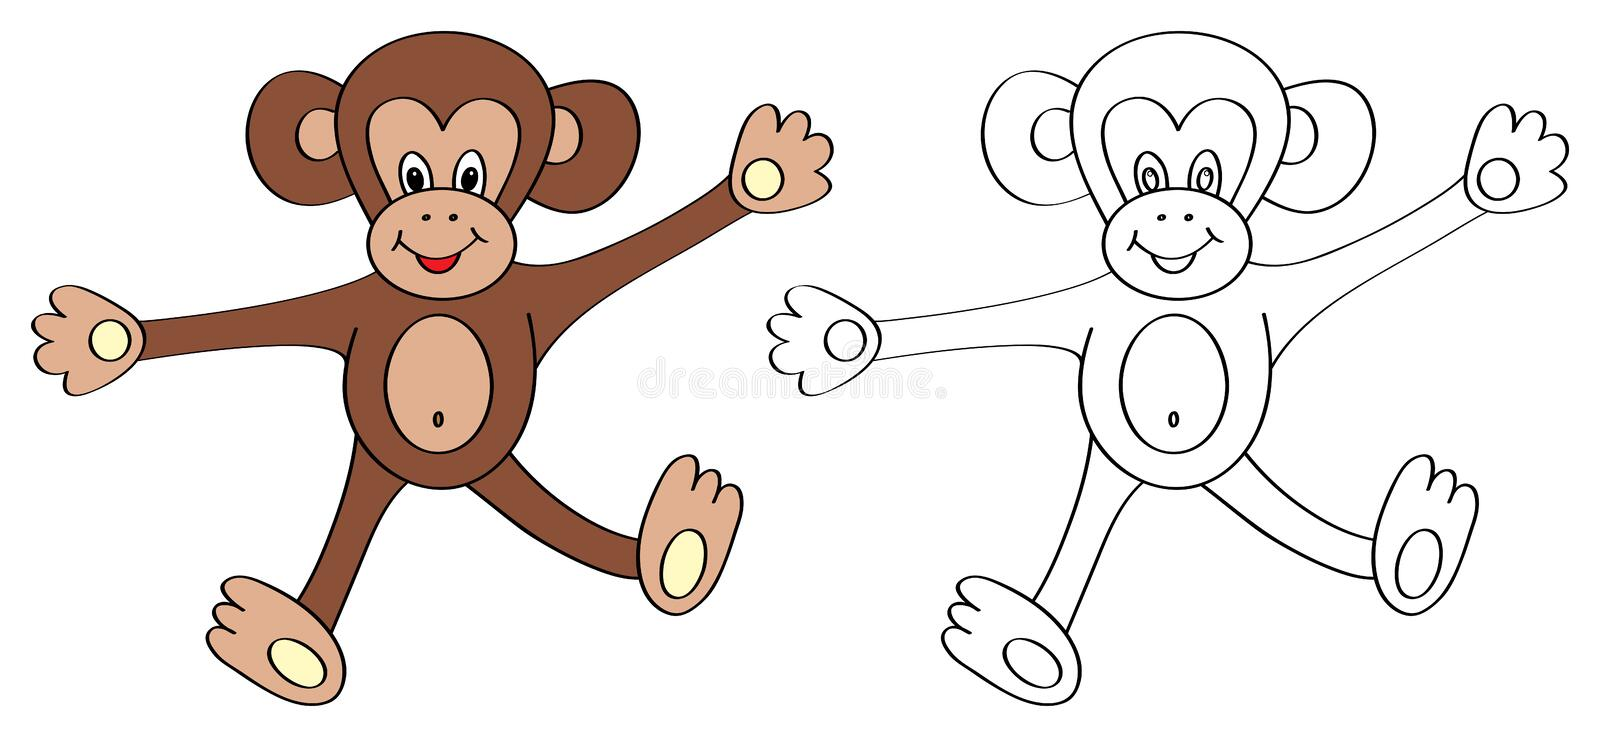 Download Coloring  Book Page For Kids: Monkey Stock Illustration - Image: 21251554